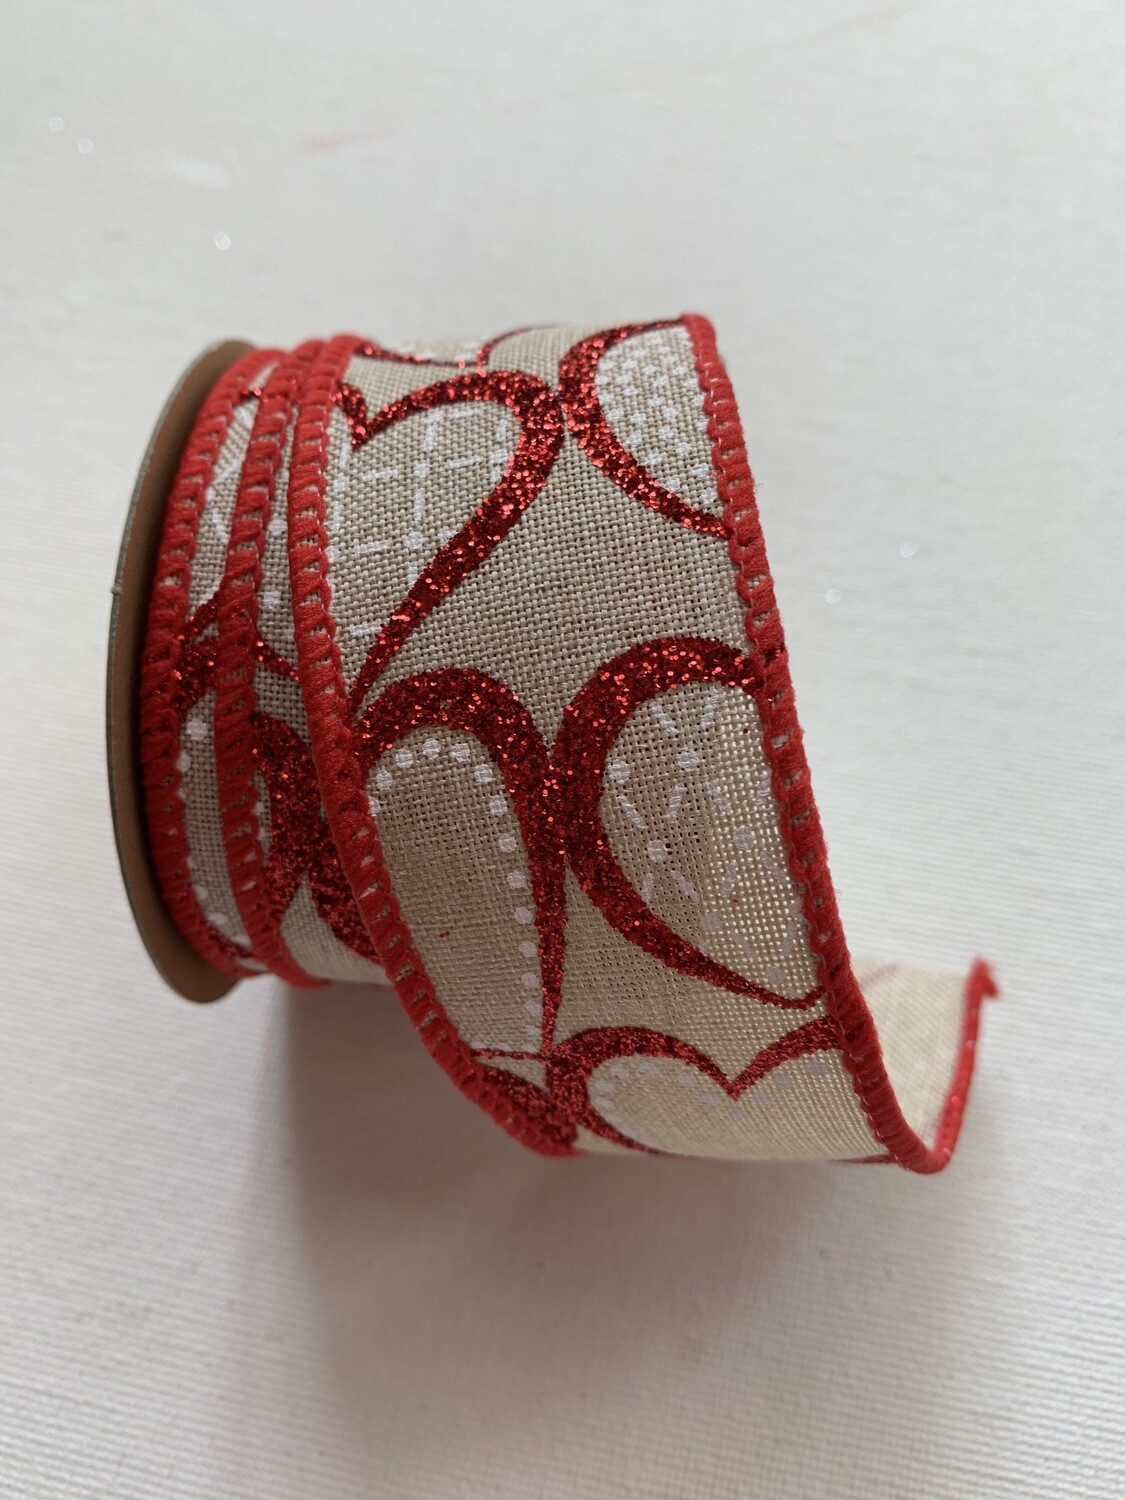 Faux Jute - Red glittery hearts wired ribbon